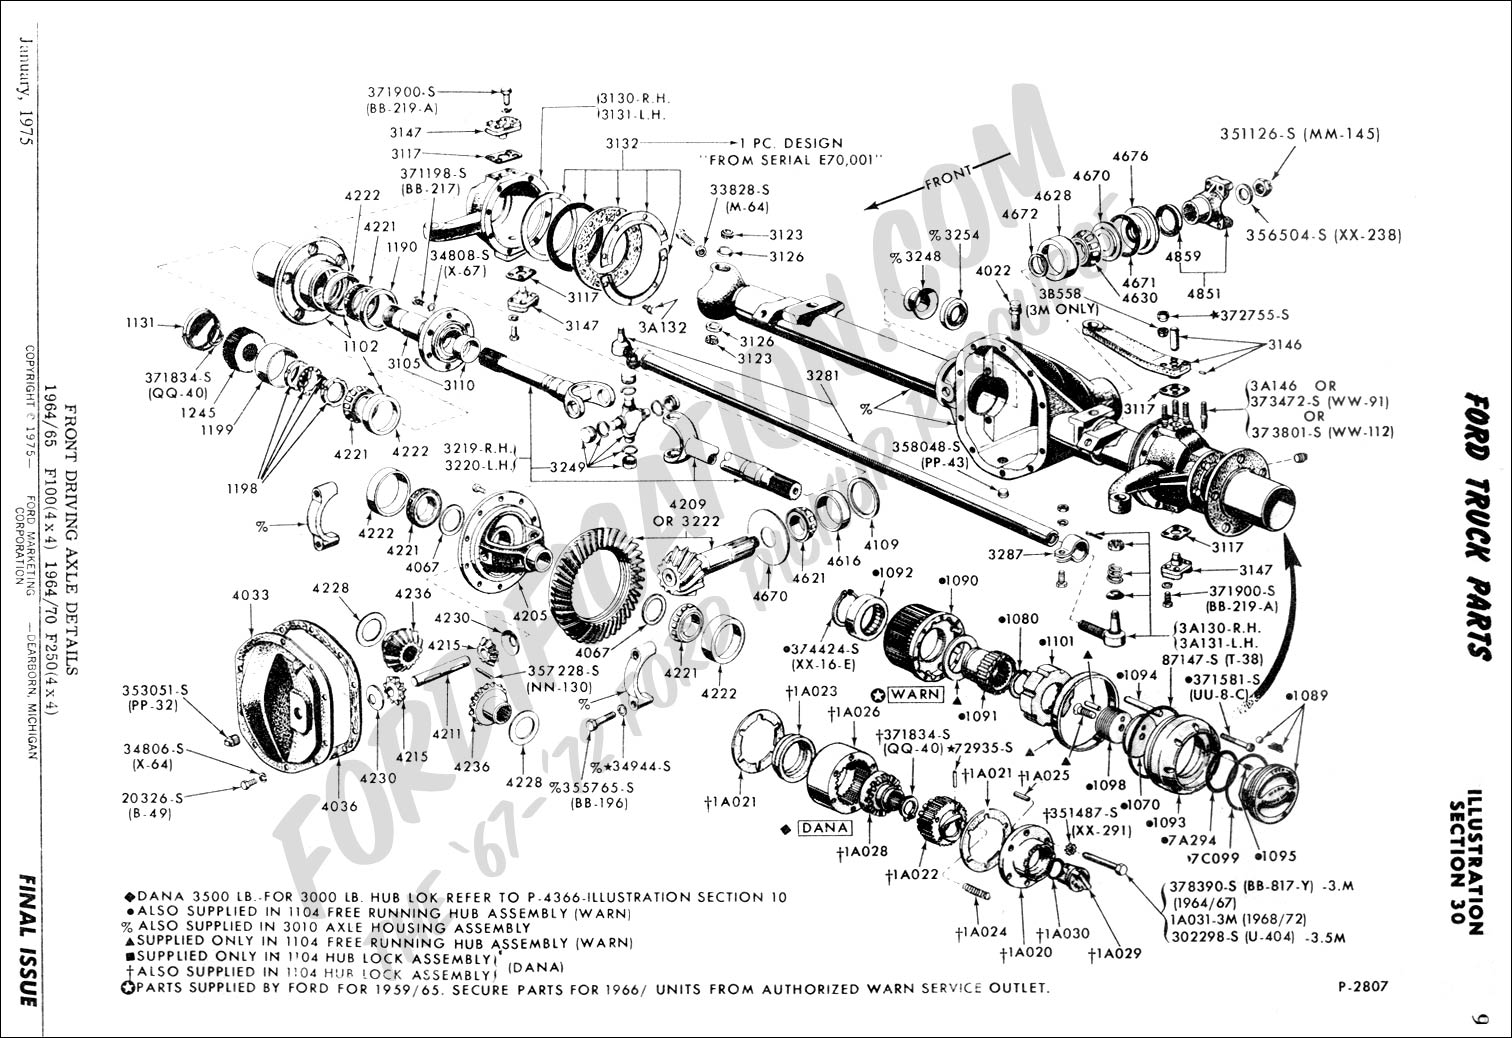 Schematics_a on Mazda Parts Catalog